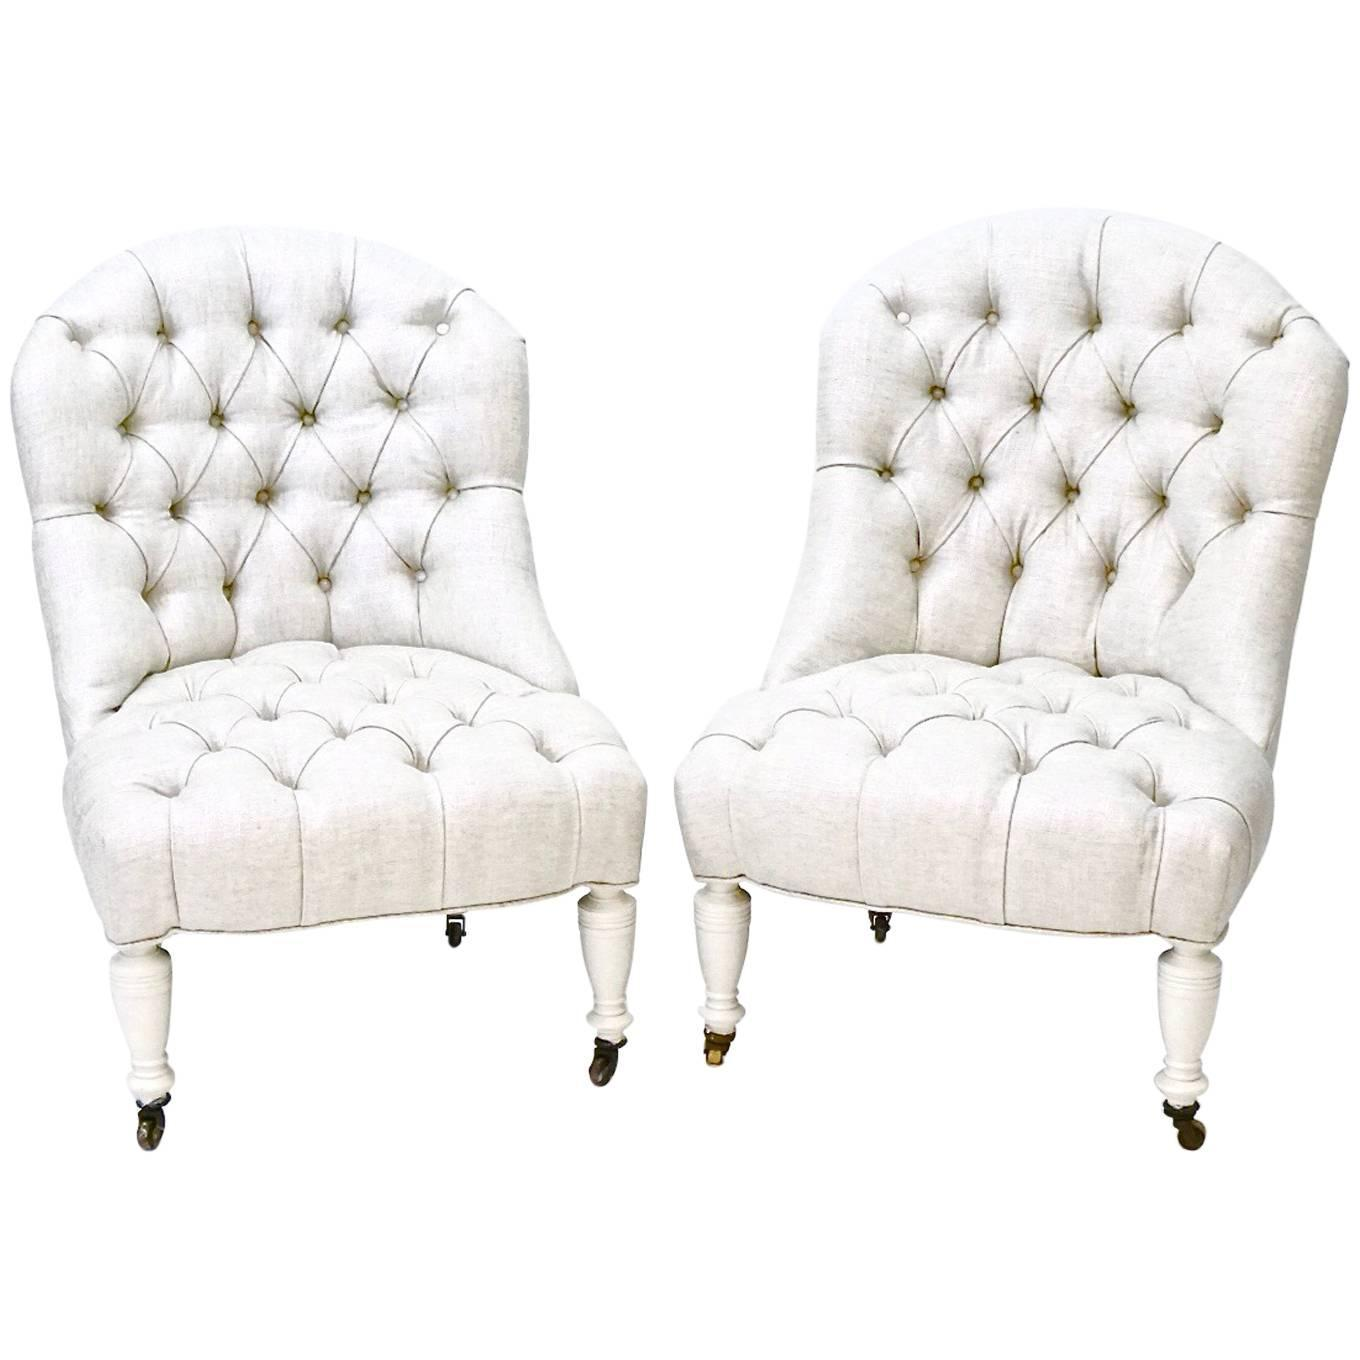 Antique Tufted Slipper Chairs (Pair) Newly Upholstered In